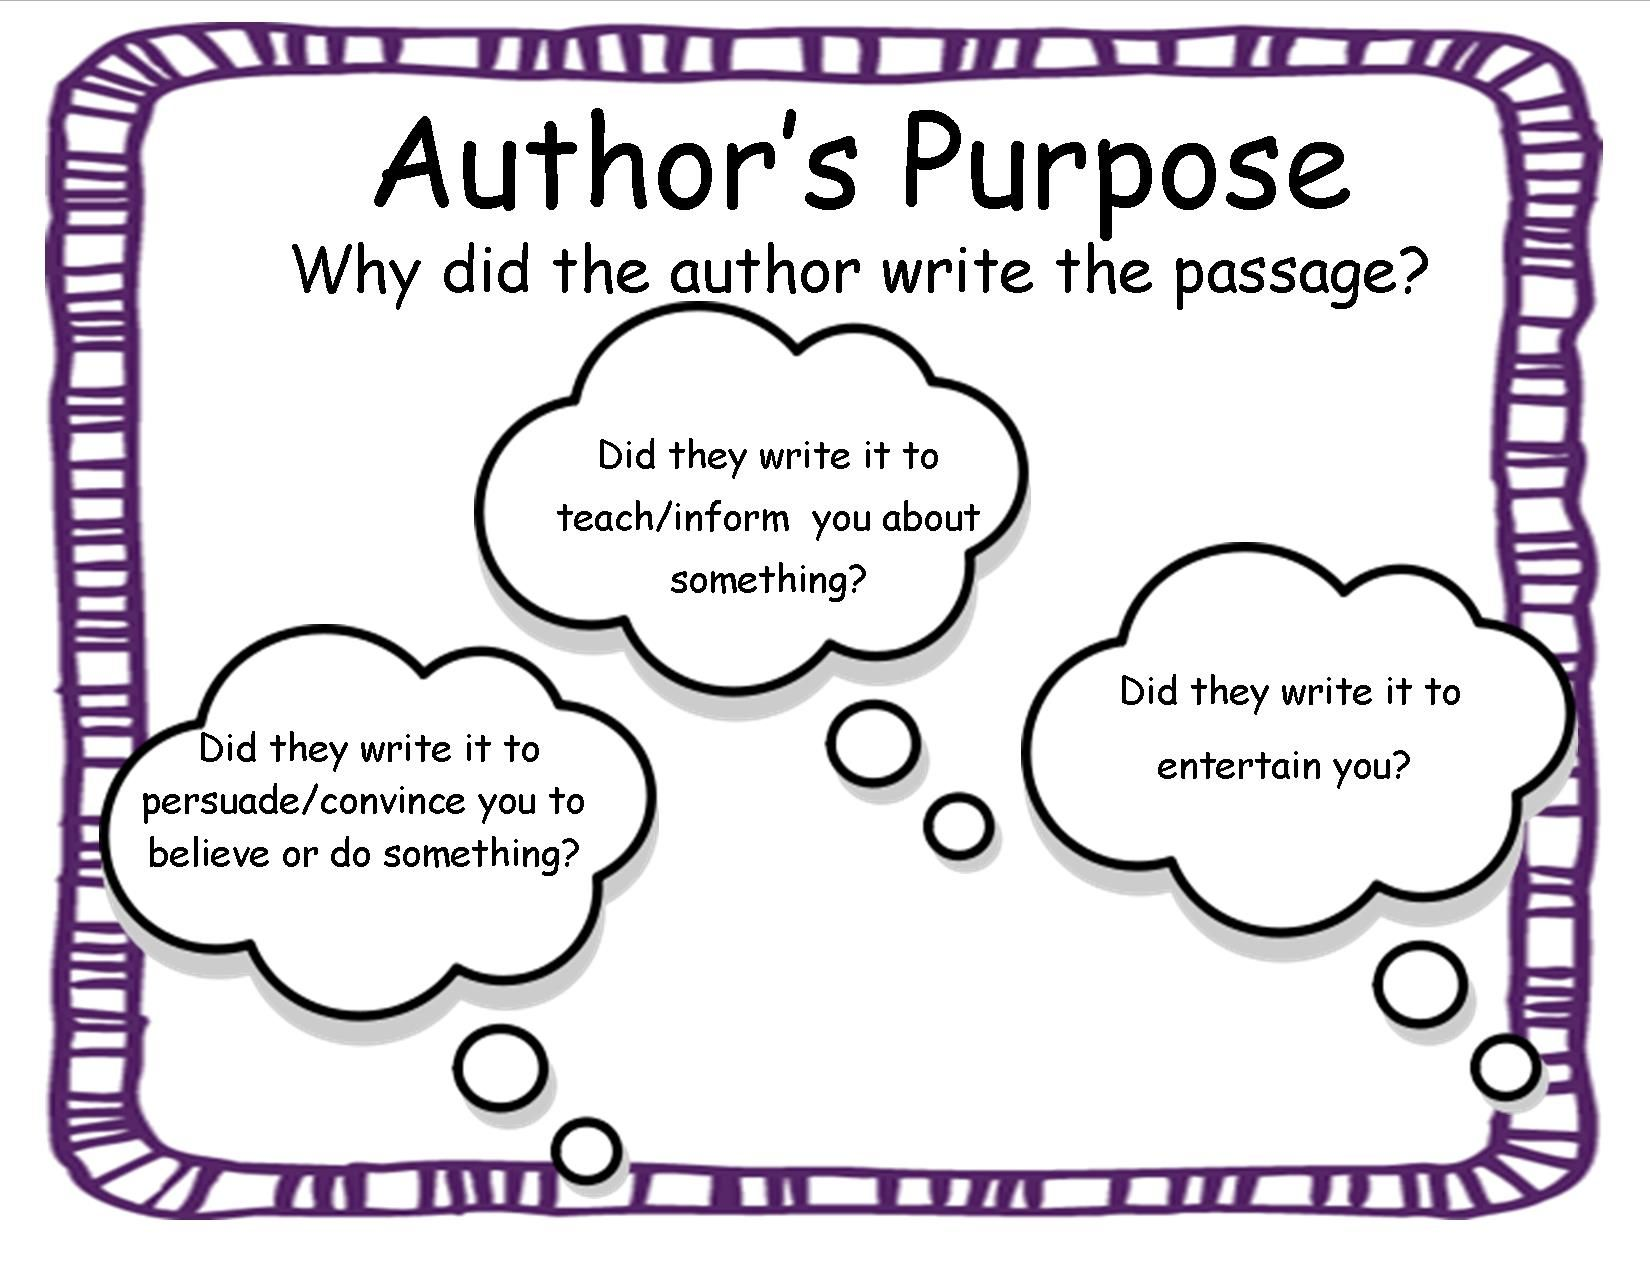 Reading Comprehension And Story Elements Printable Cards From The Teacher S Guide Authors Purpose Reading Worksheets Author S Purpose Worksheet